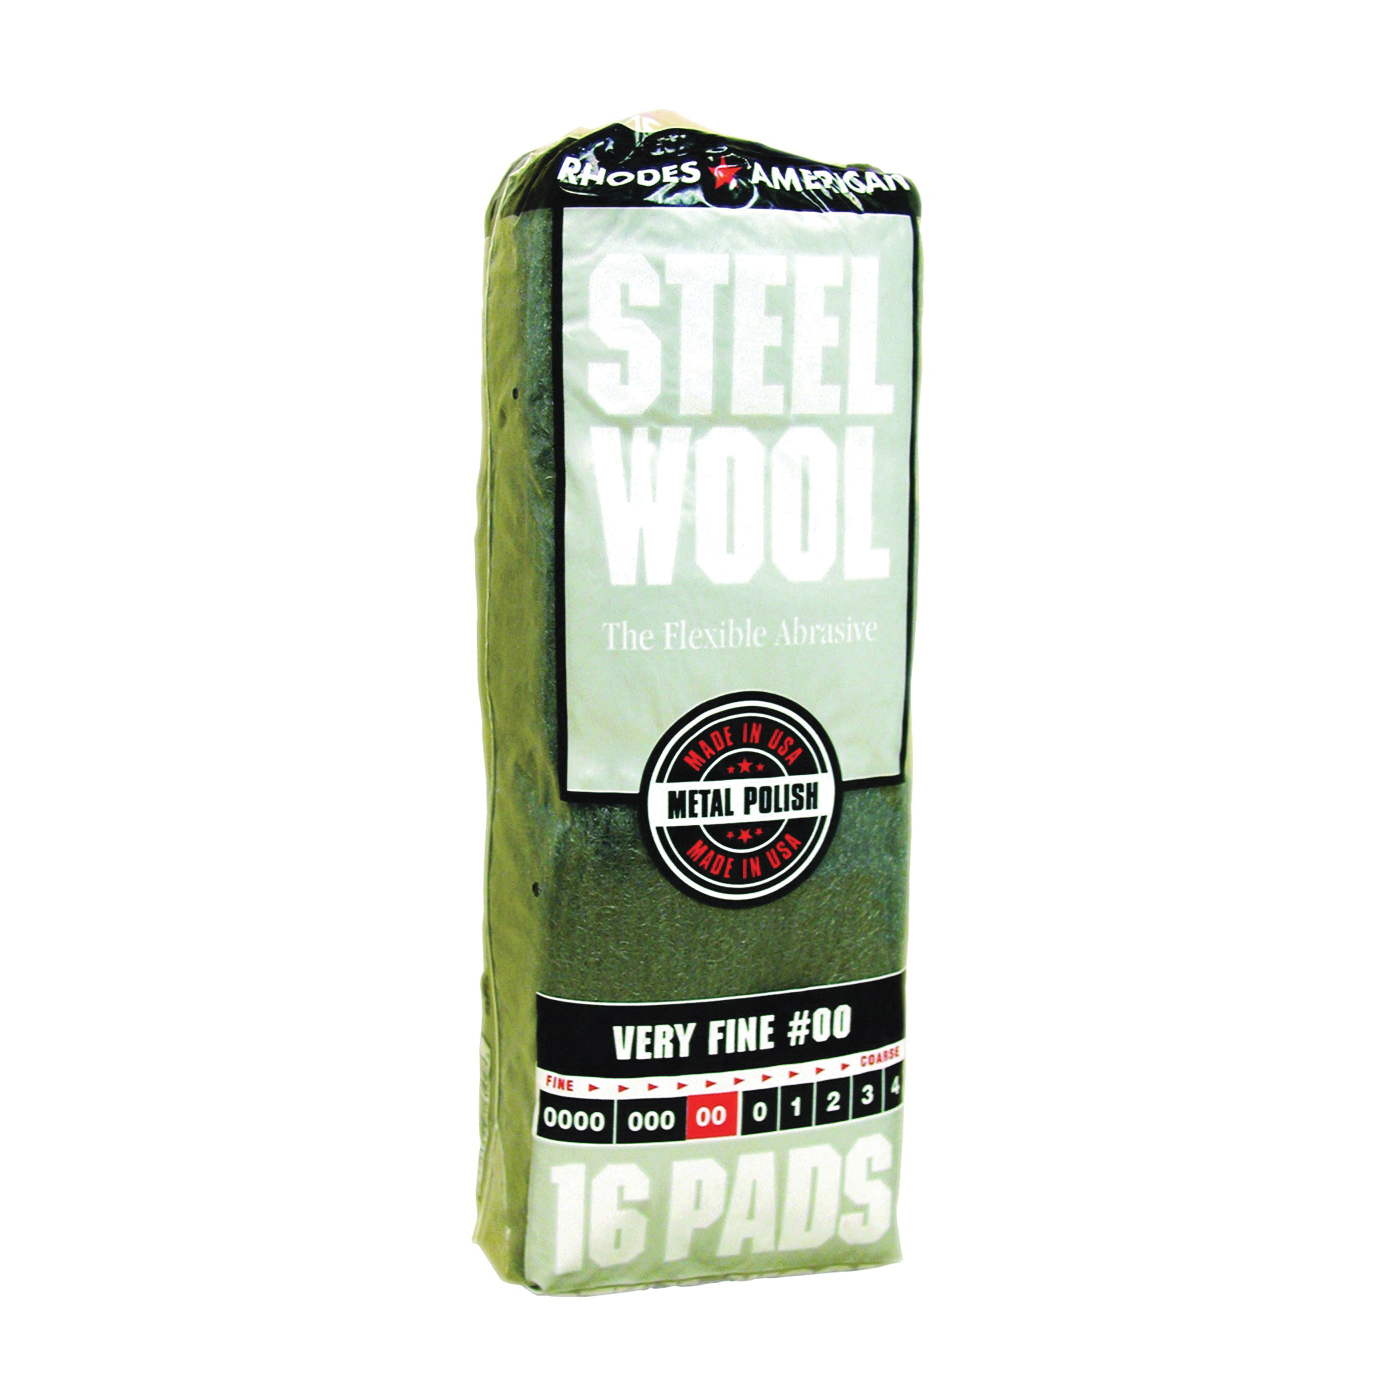 Picture of Homax 106602-06 Steel Wool Pad, #00 Grit, Very Fine, Gray